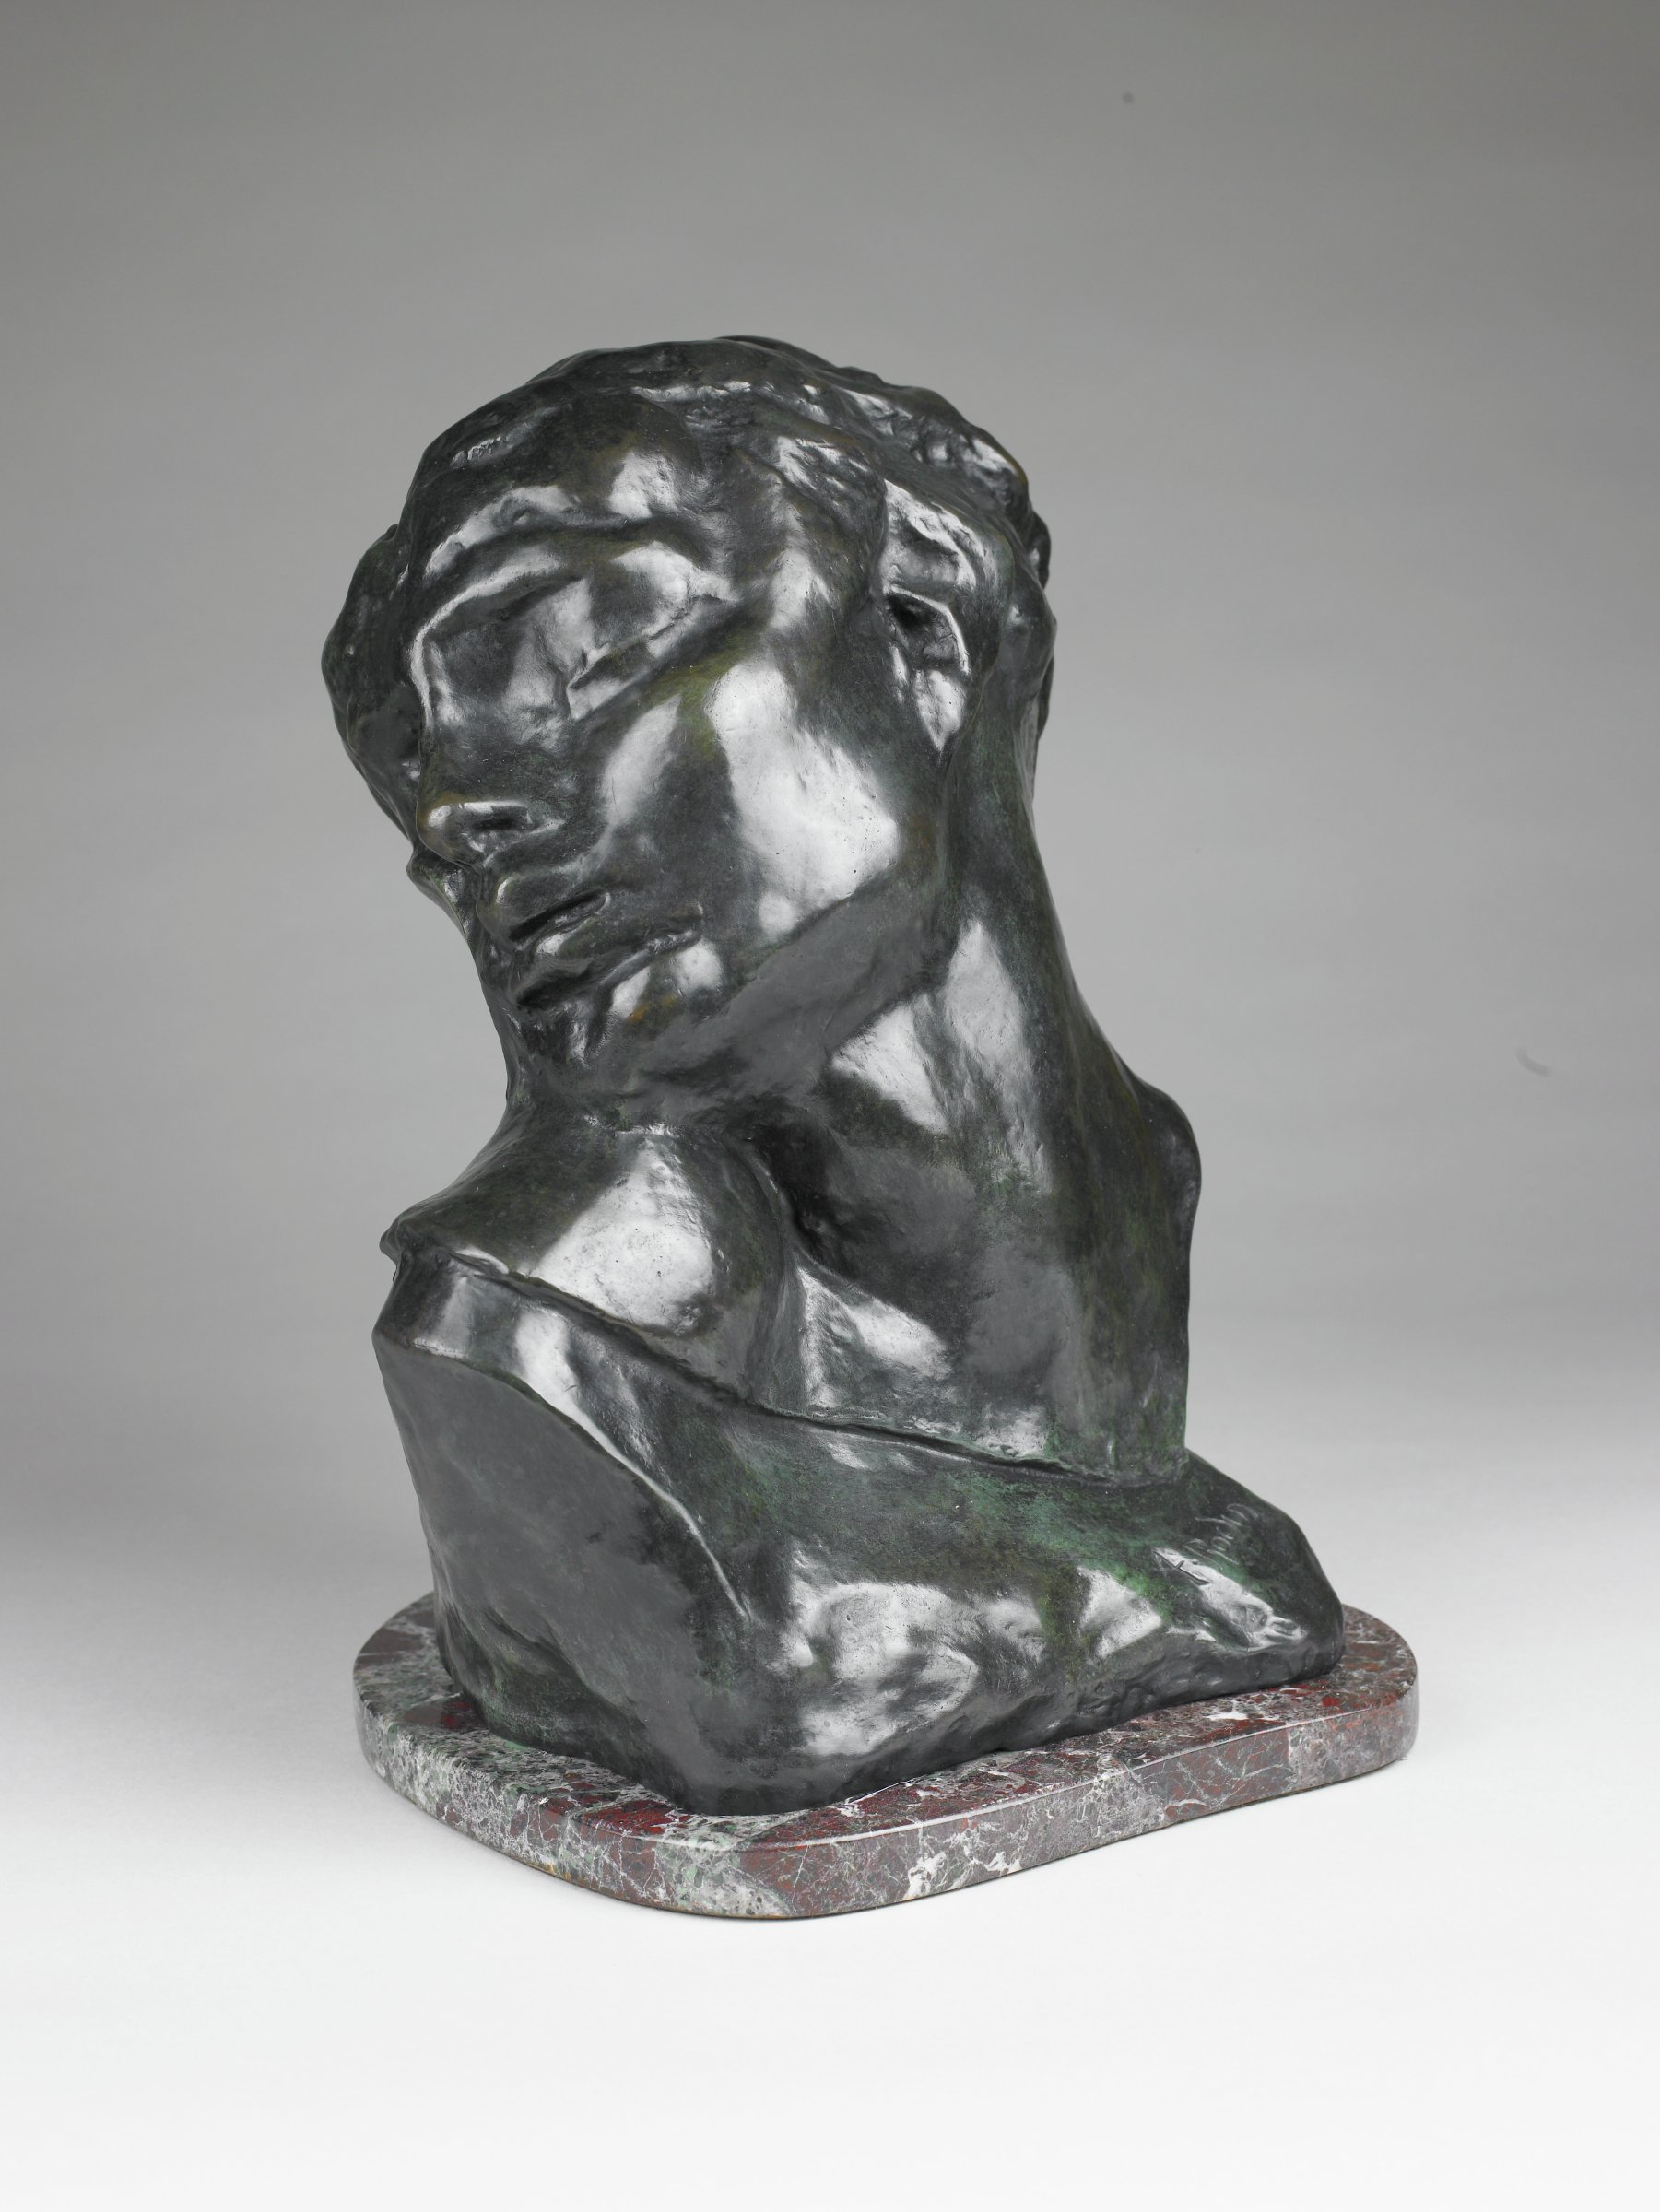 Head of Lust, Auguste Rodin, cast bronze